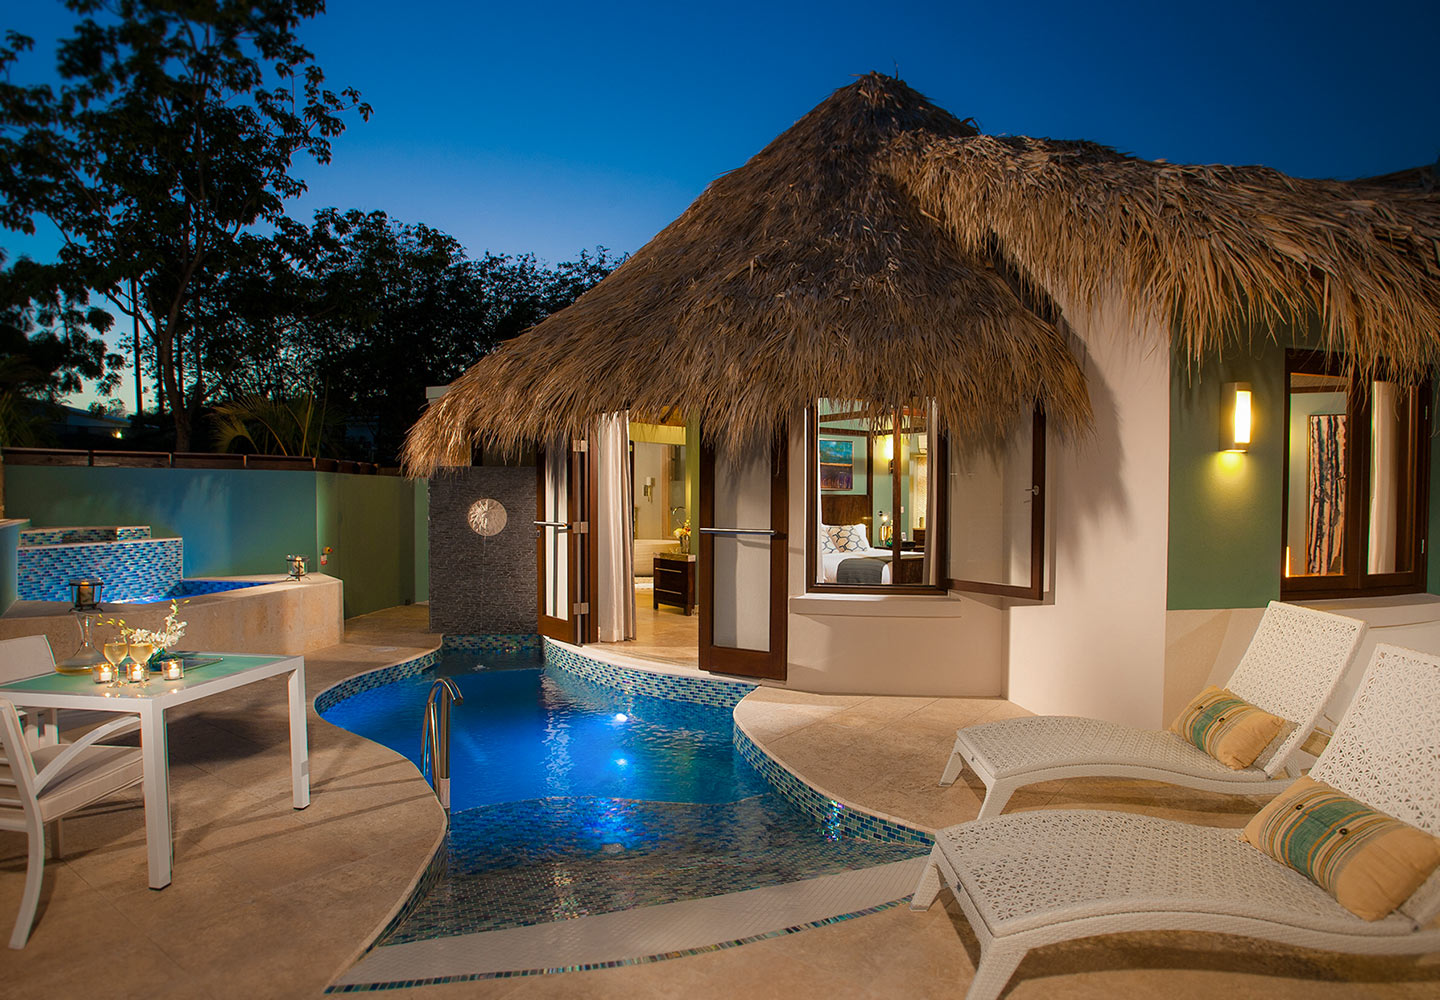 Sandals Royal Barbados Rondoval Suite Your Caribbean Insider